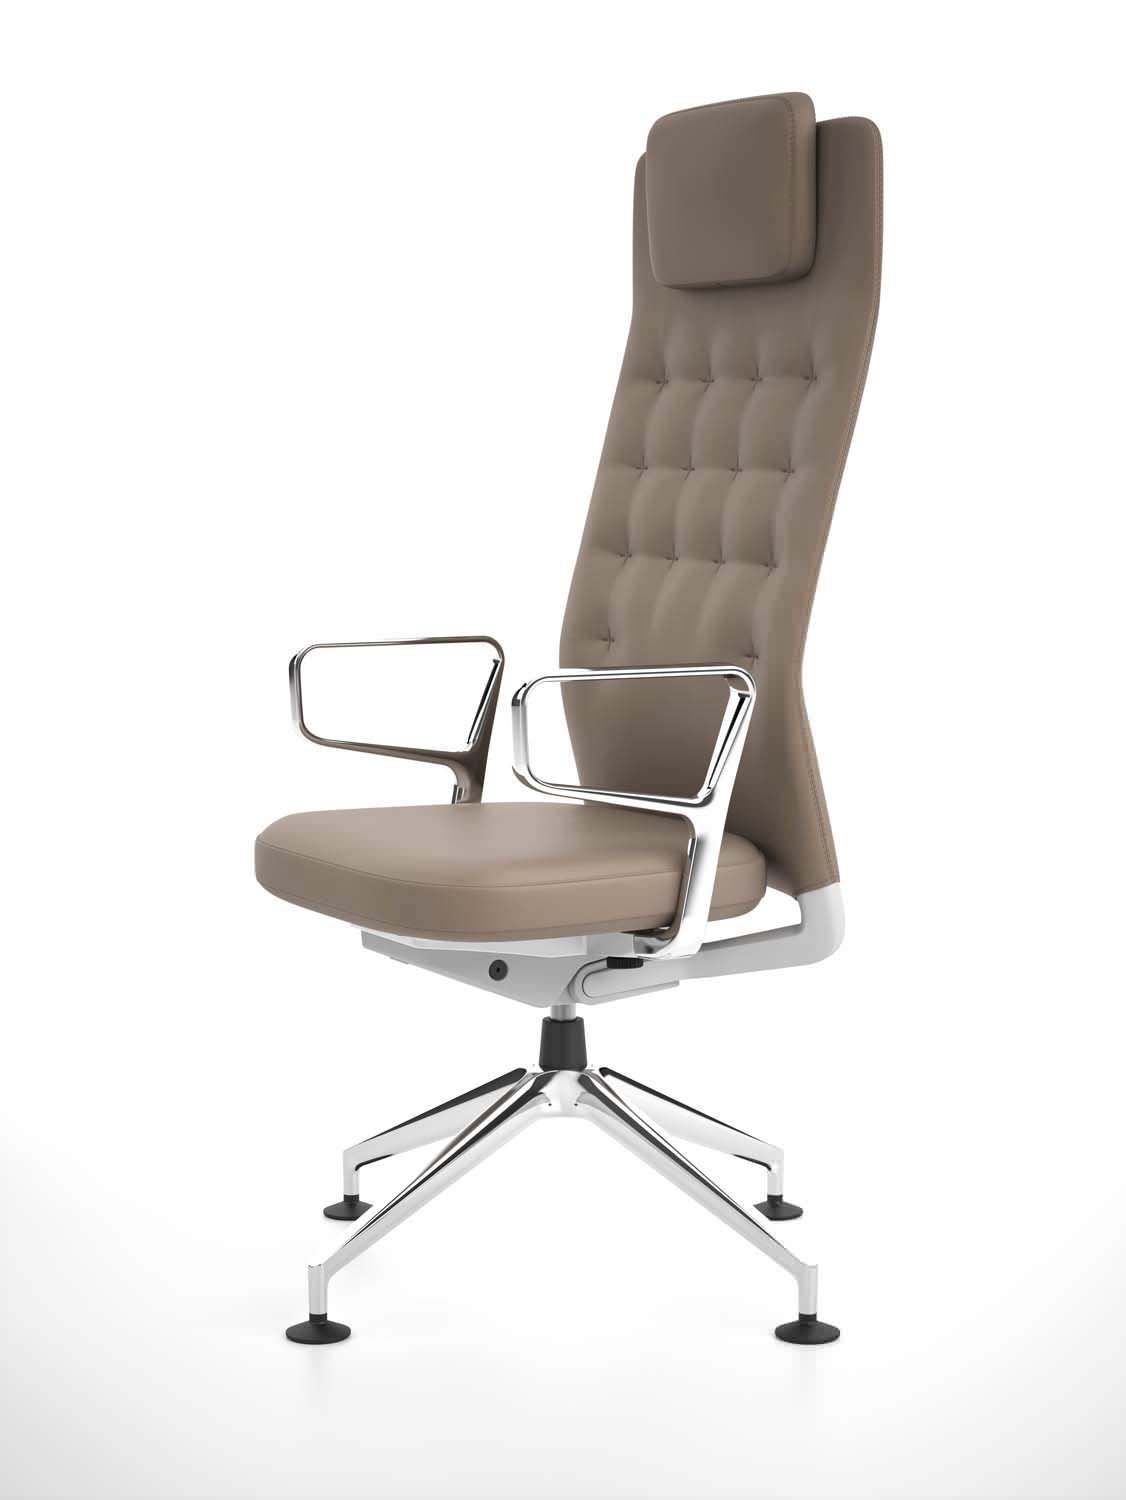 contemporary office chair / ergonomic / with headrest / adjustable - ID  TRIM L